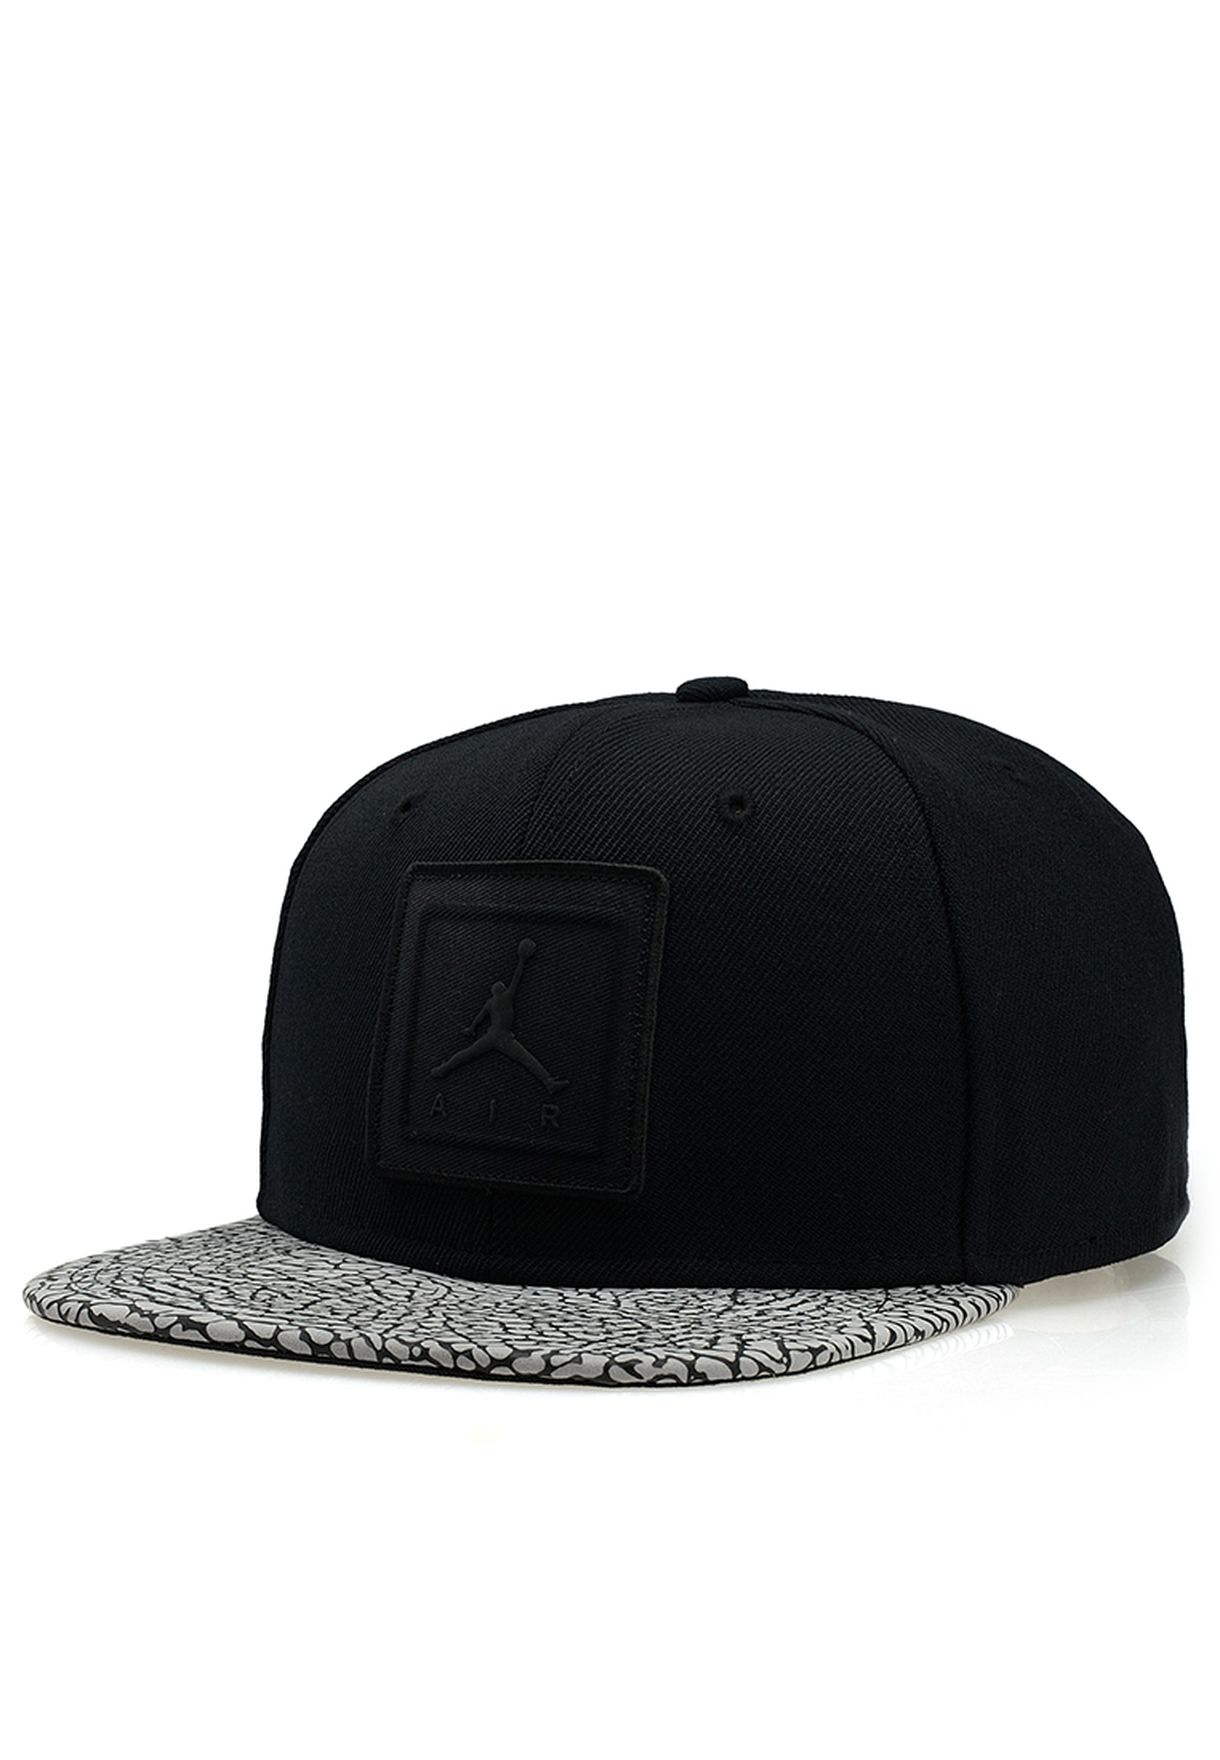 Shop Nike black Jordan Jumpman Air Cap NKAP589016-010 for Men in ... f151941204d